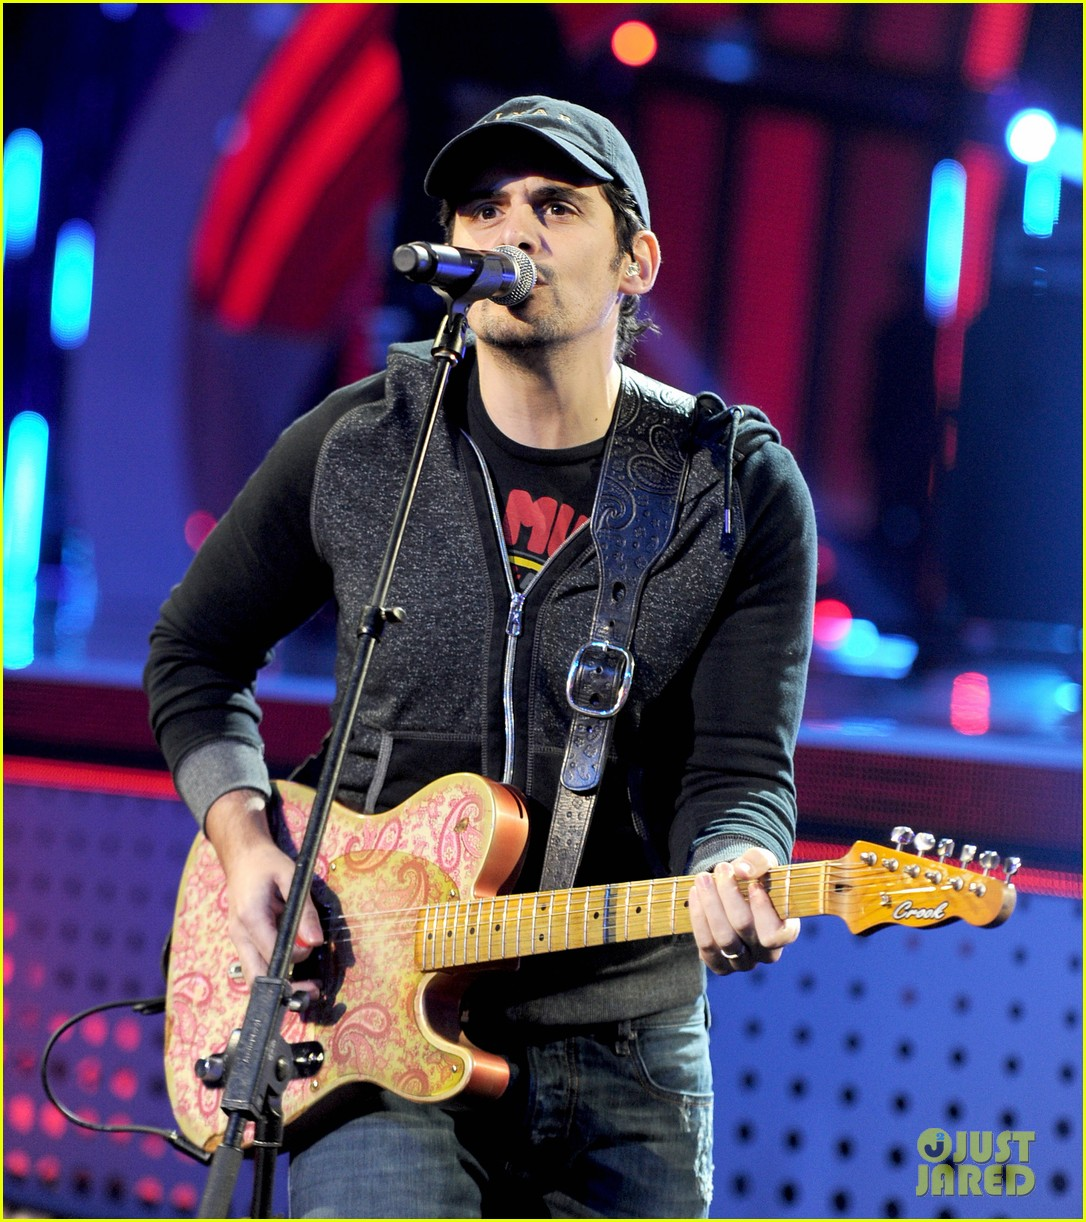 brad paisley onerepublic peoples choice awards 2014 rehearsals 01